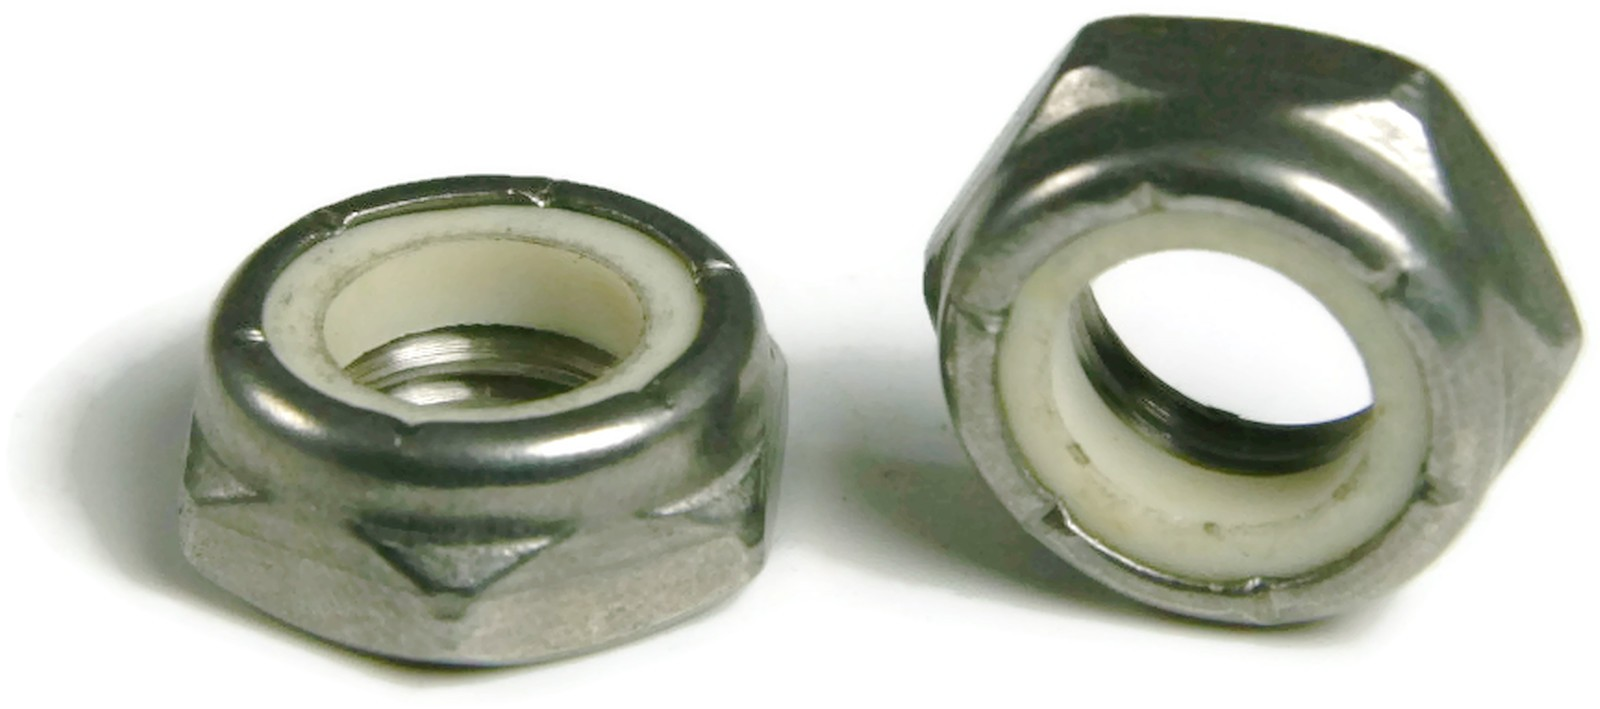 NEW Nylon Nut : Suit Top of Steering Shaft : All Models SV1/RV1/AP5/AP6/VC/VE/VF/VG/VH/VJ/CK/CH/CJ/CK/CL/CM